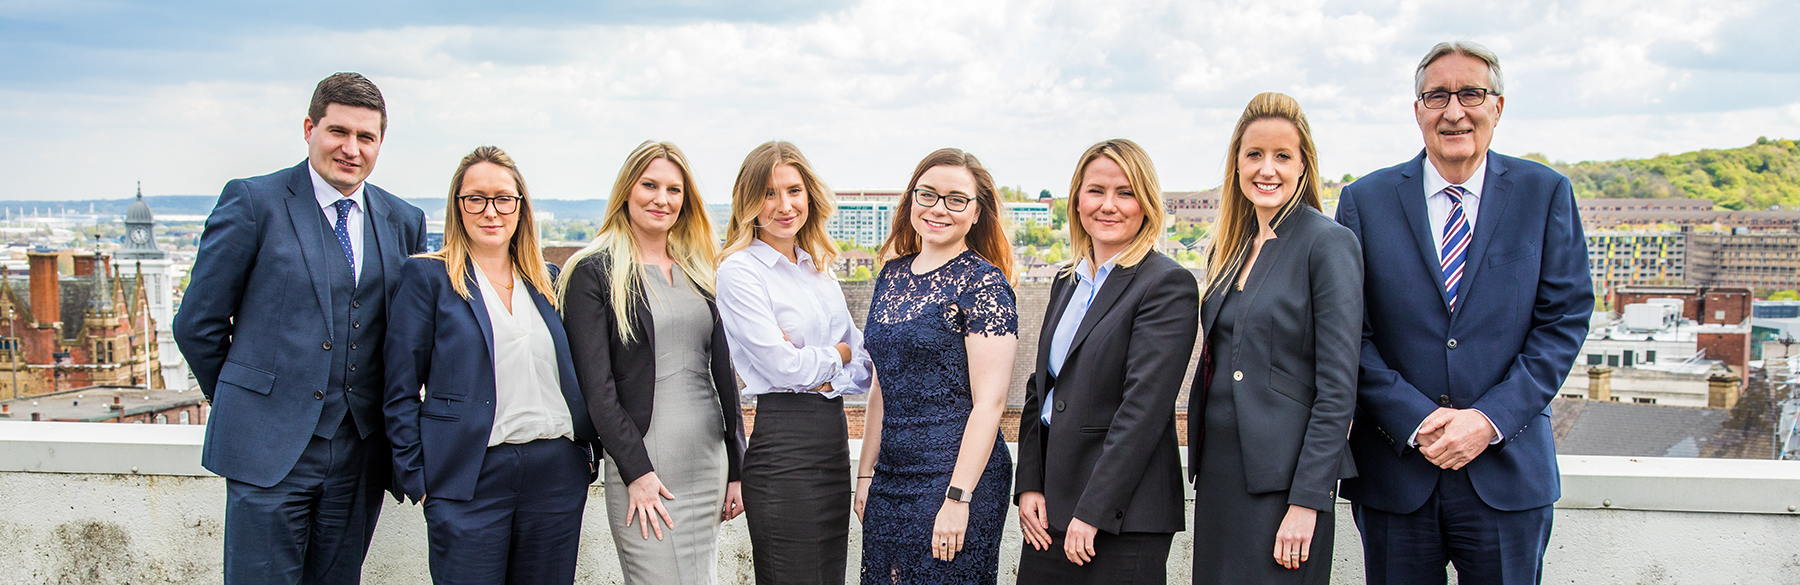 commercial photography, head shots, corporate photography, consultancy, group shots, sheffield, south yorkshire